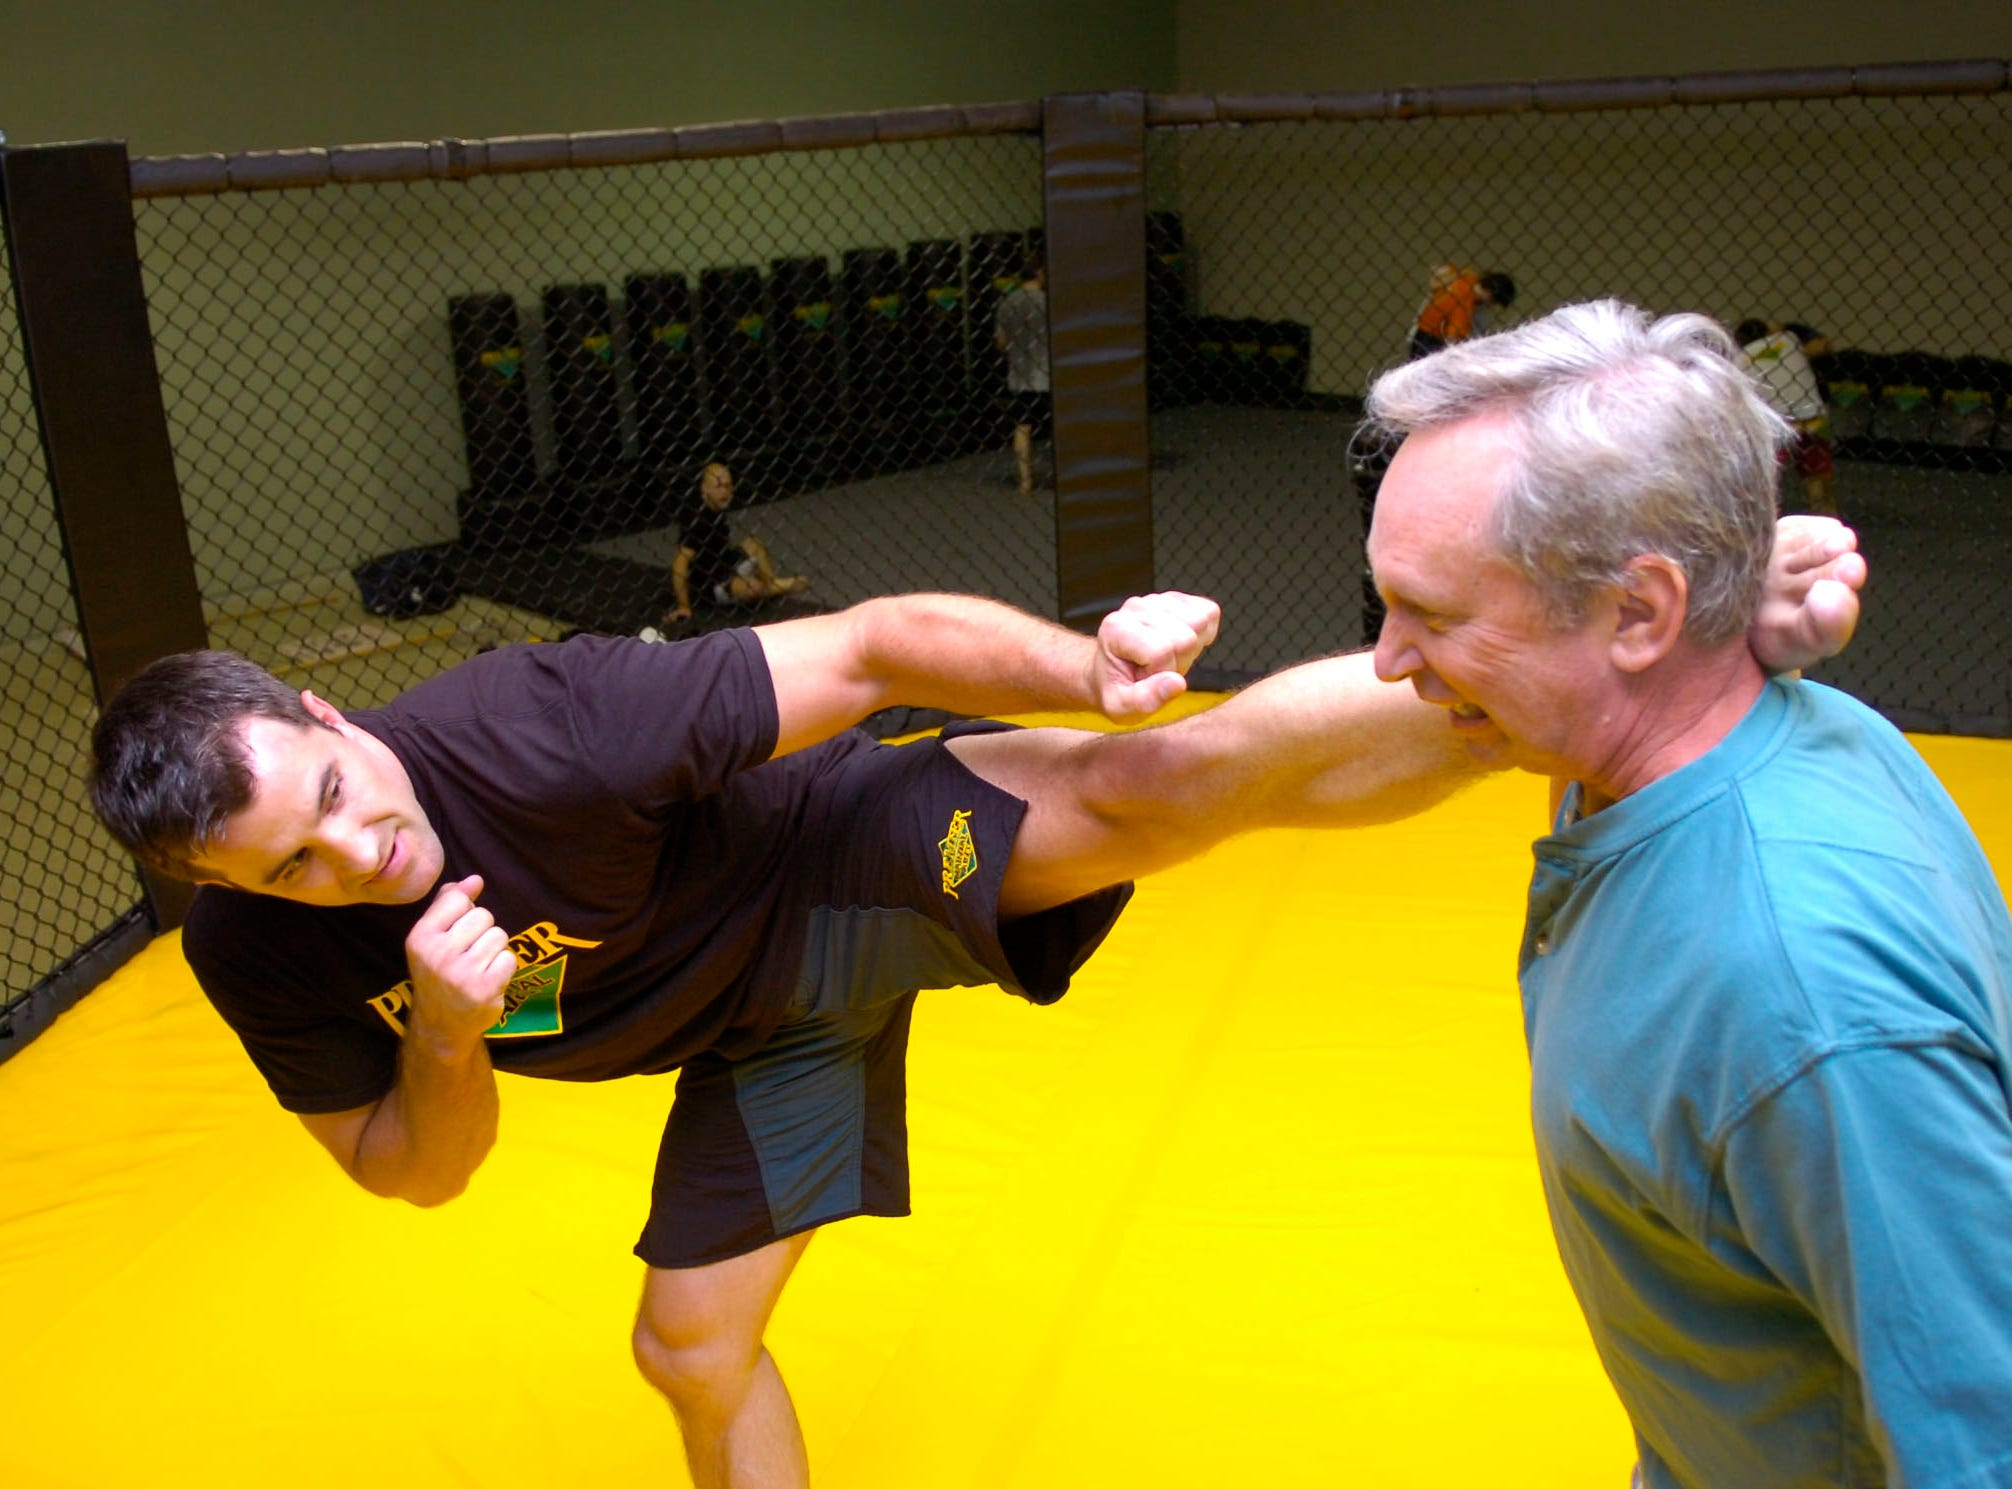 News Sentinel columnist John Adams is the target for martial arts fighter Terry Pollard on July 13, 2008.